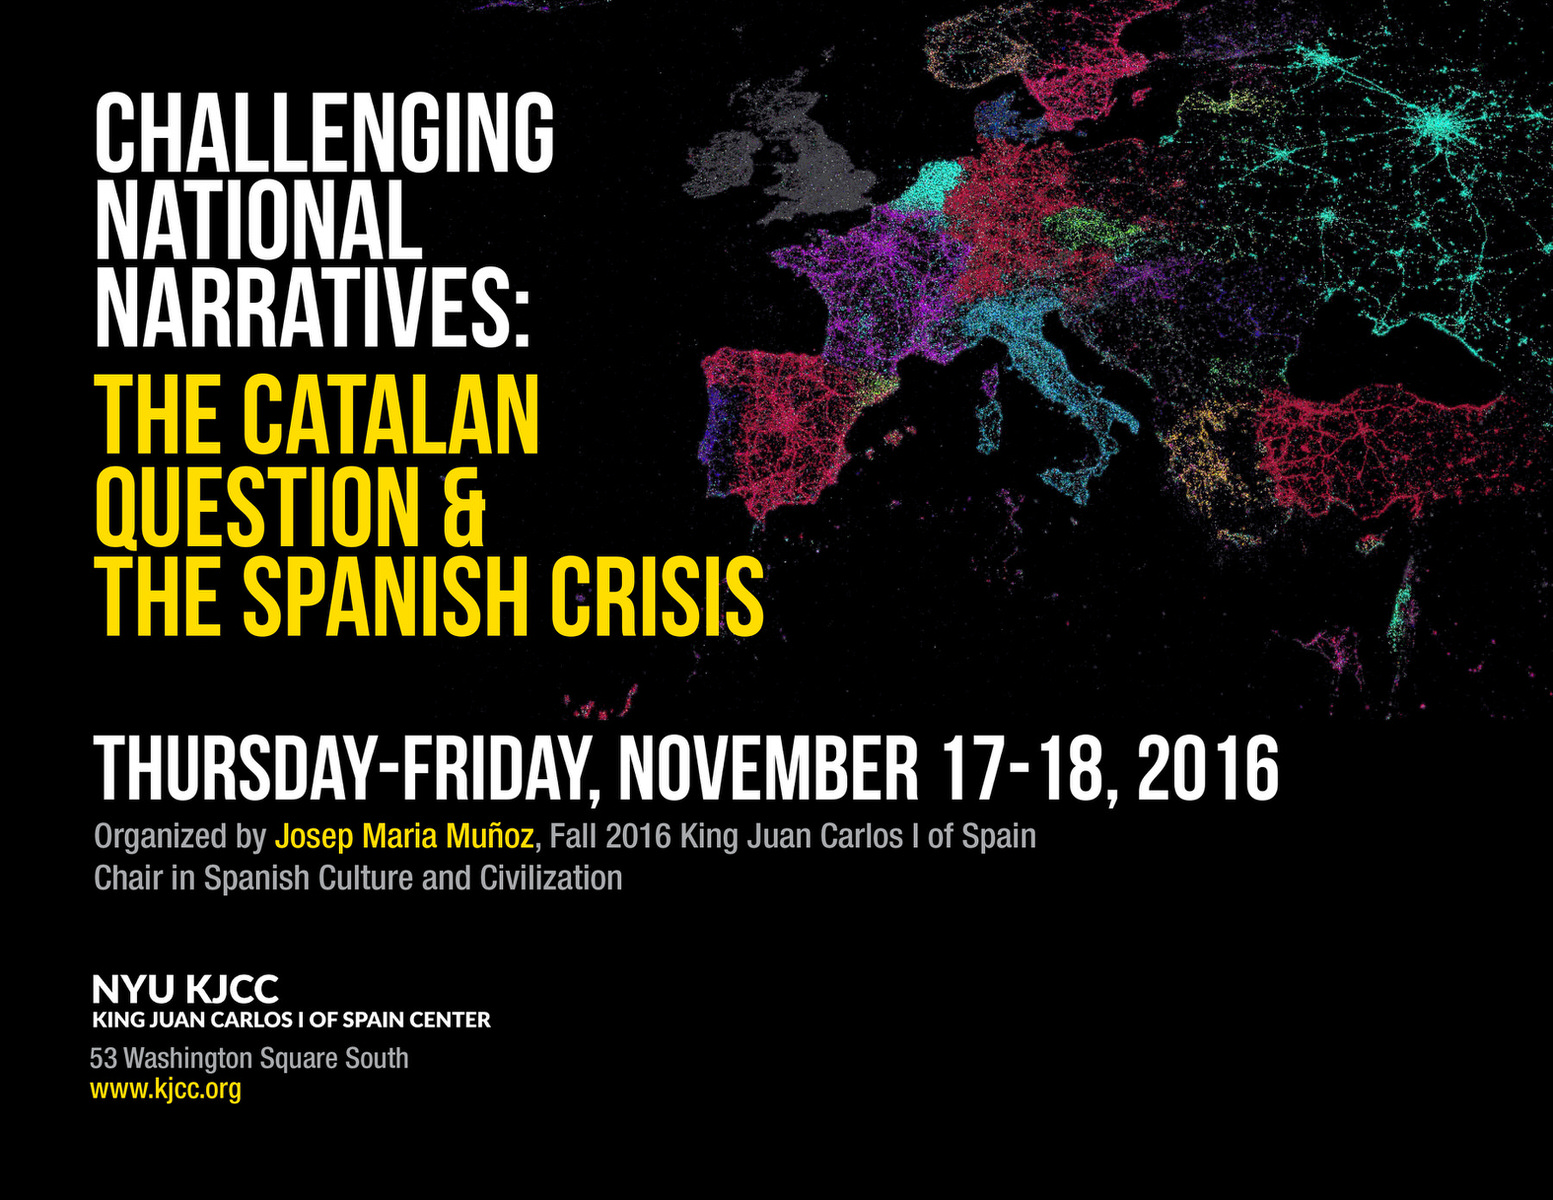 NYU KJCC | The King Juan Carlos I of Spain Center